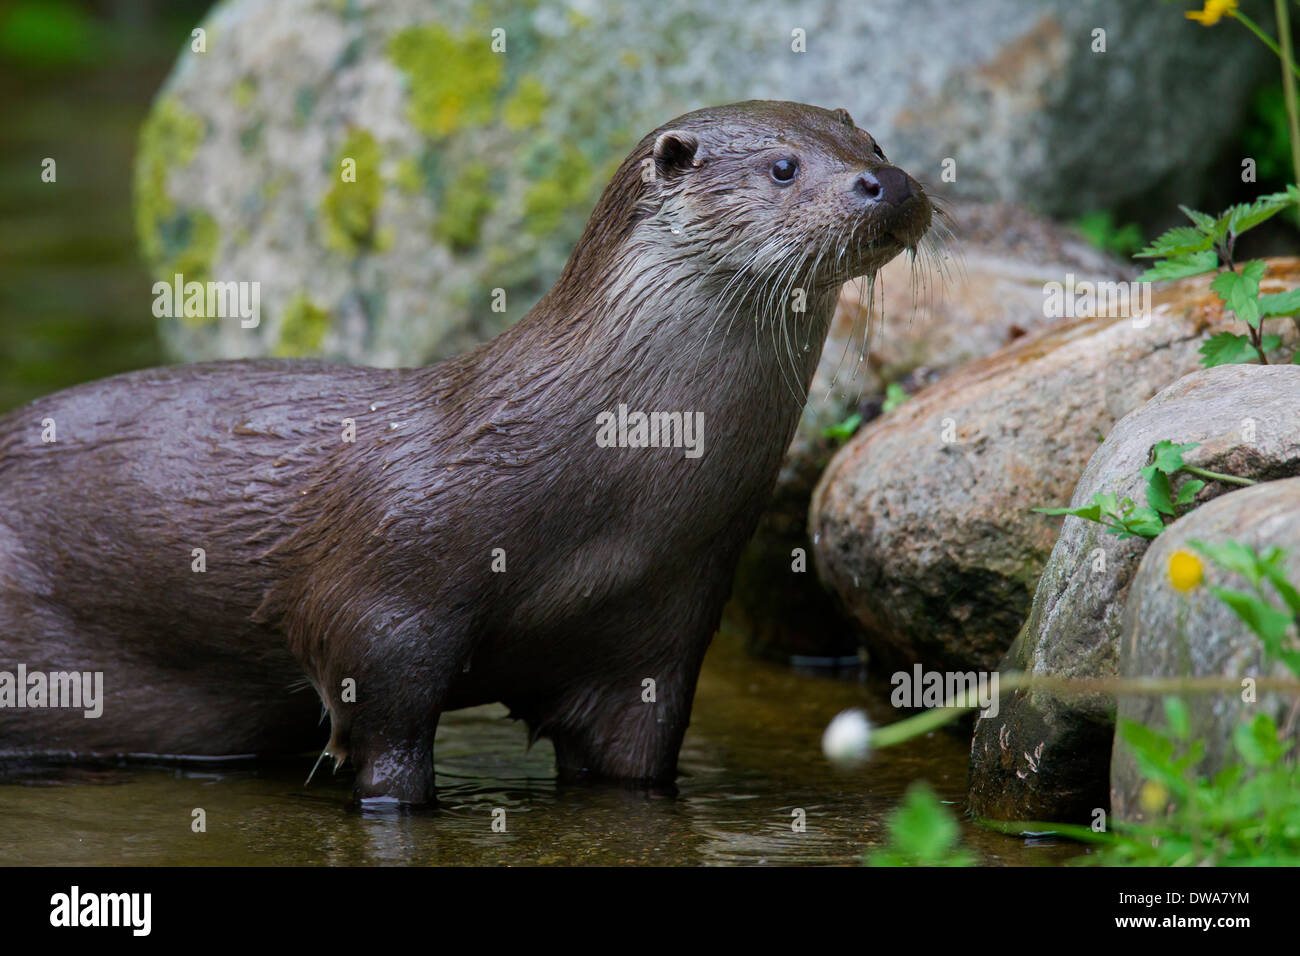 European River Otter (Lutra lutra) foraging along riverbank with rocks - Stock Image